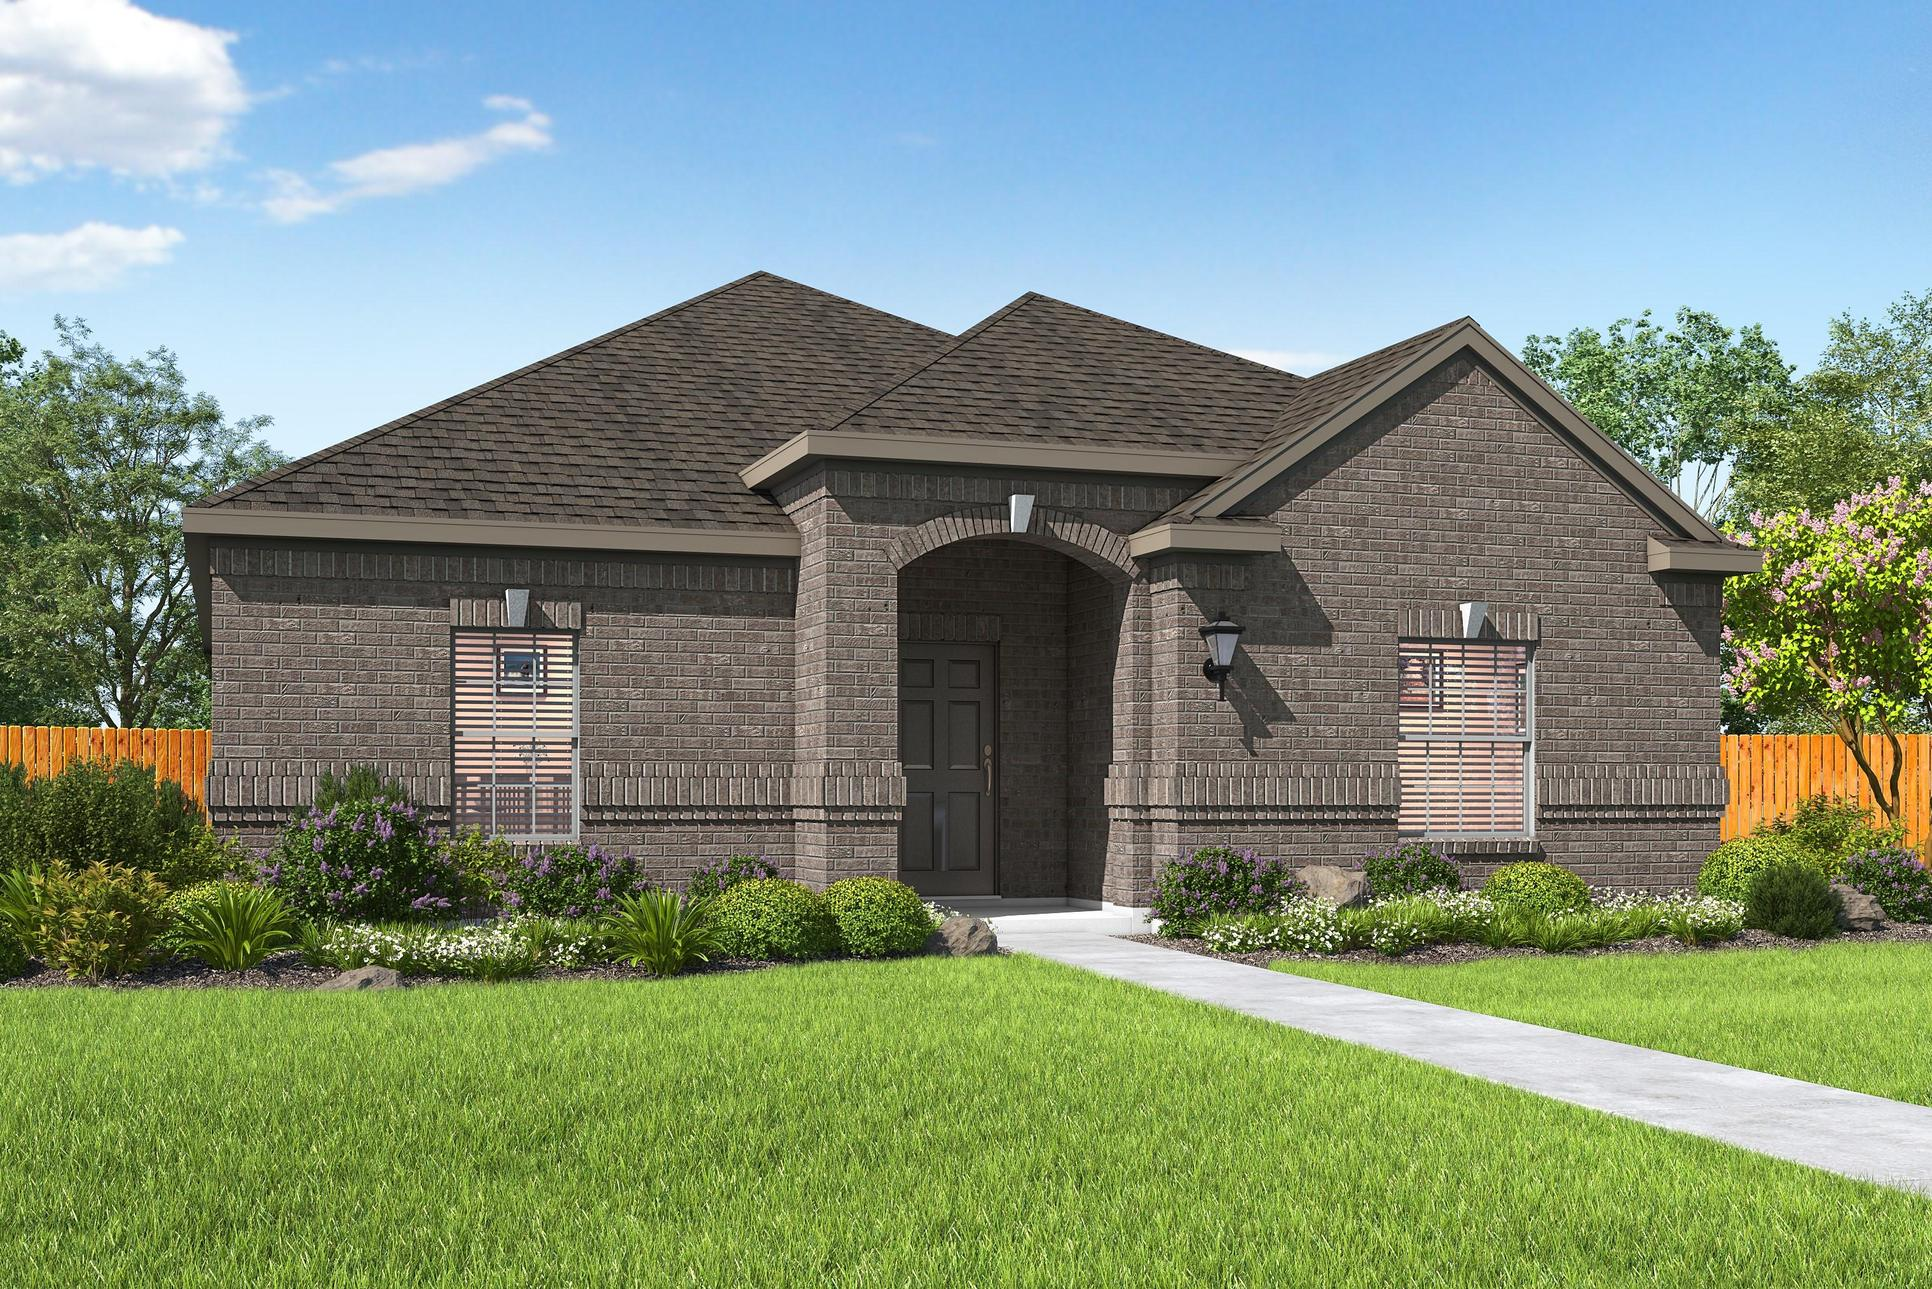 The Tanglewood by LGI Homes:The Tanglewood Plan is available now at Hampton Meadows!